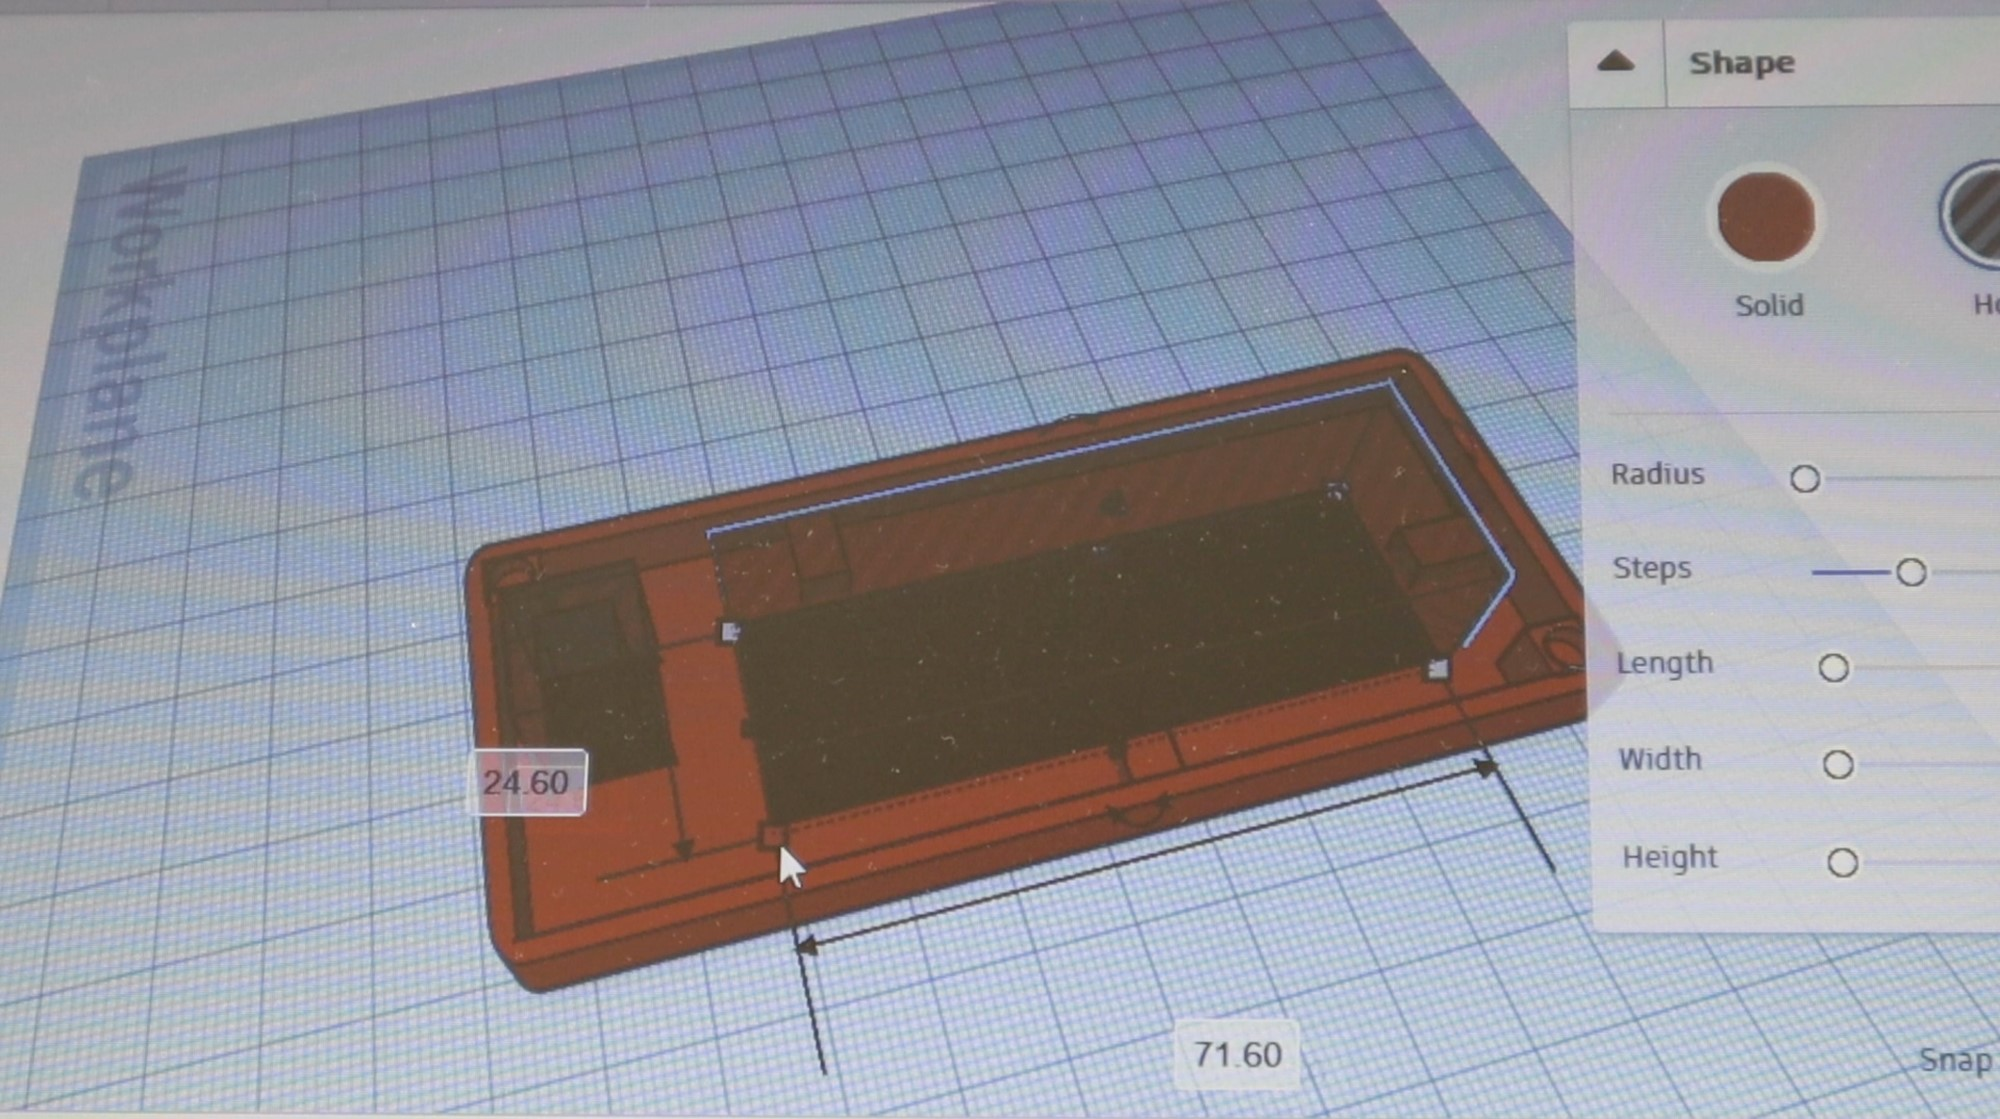 Adjusting The Size Of The Cutout On Enclosure